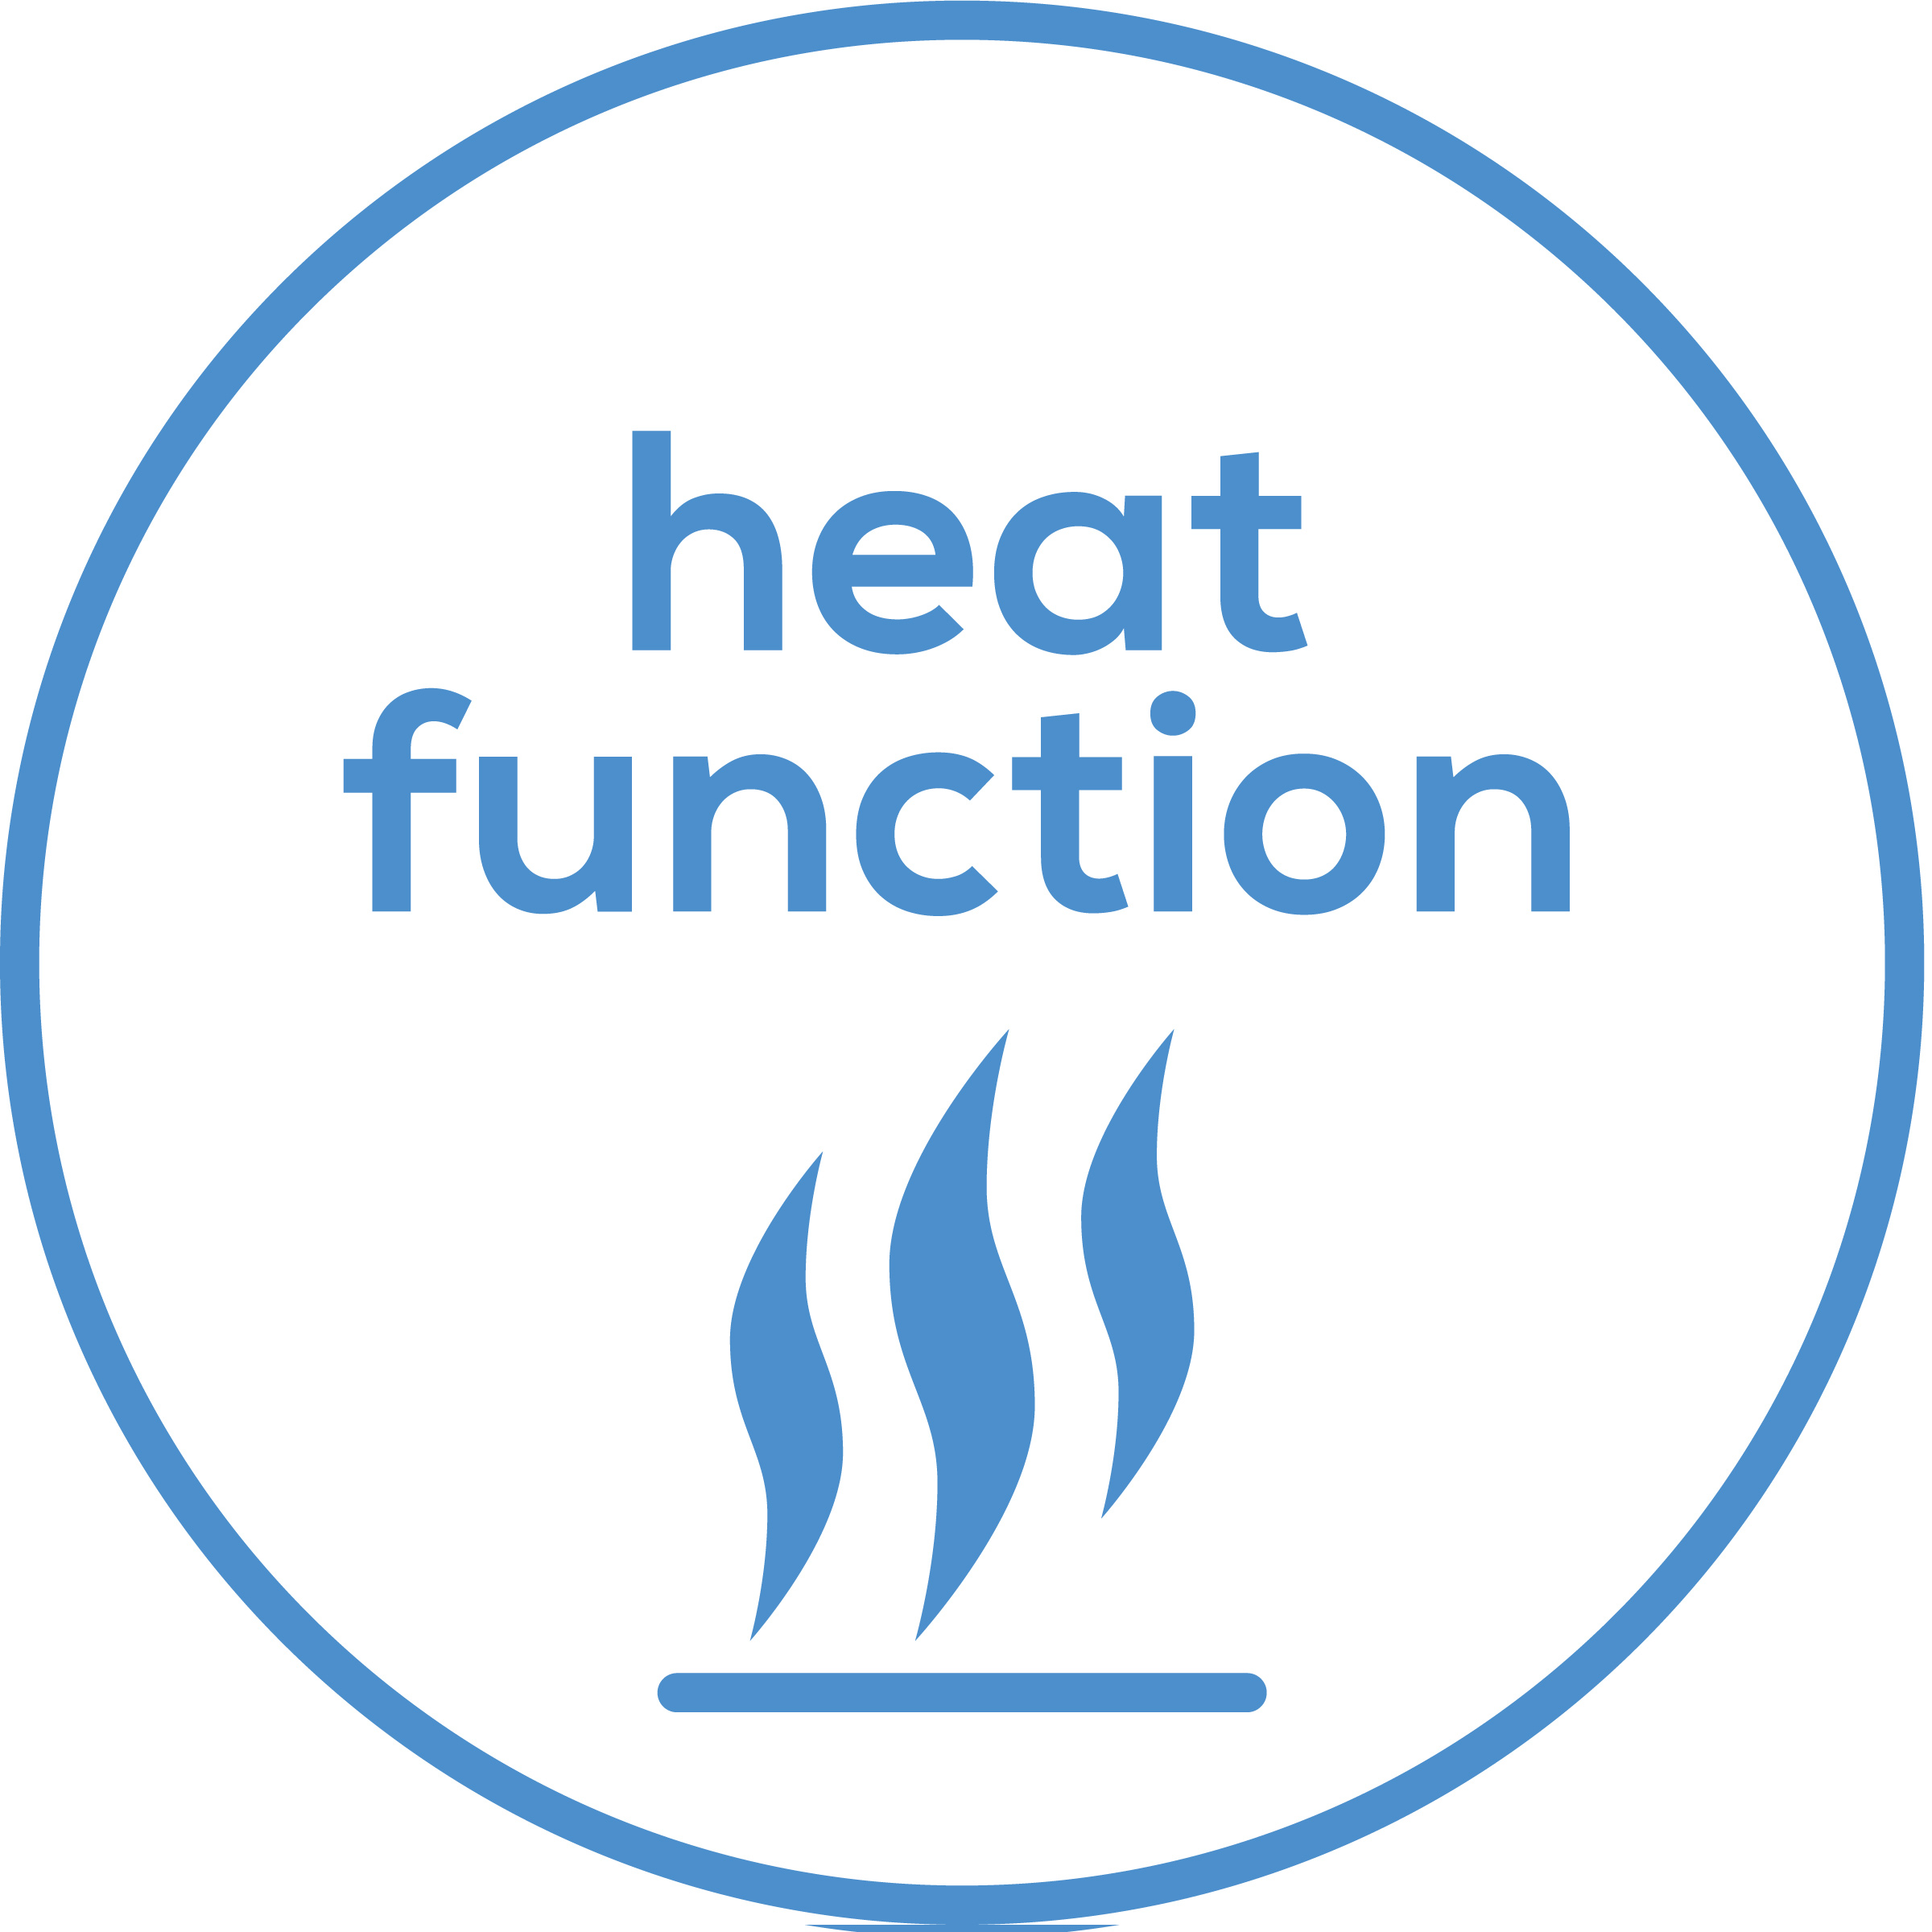 Heat function Heat function